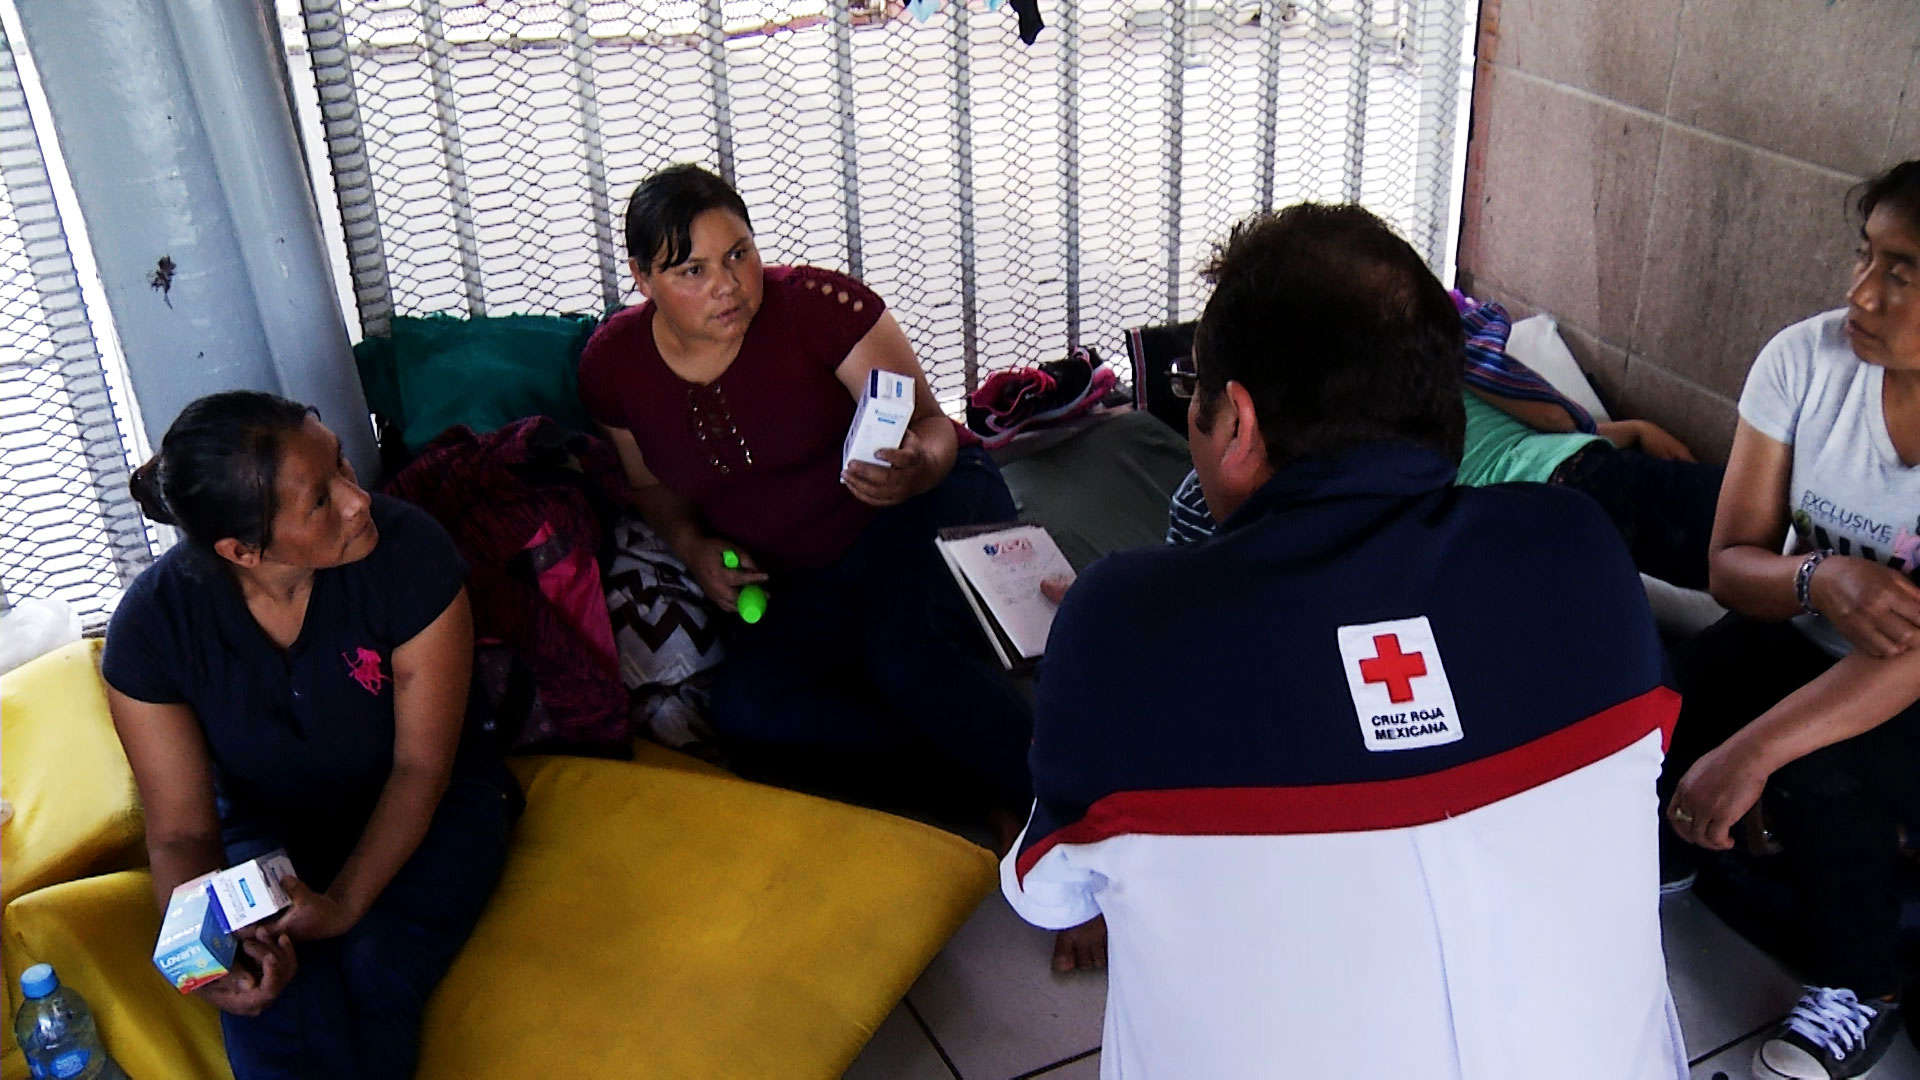 A Mexican Red Cross volunteer offers medicine to a woman waiting to make a request for asylum outside the port of entry in Nogales, Sonora on September 4, 2018.